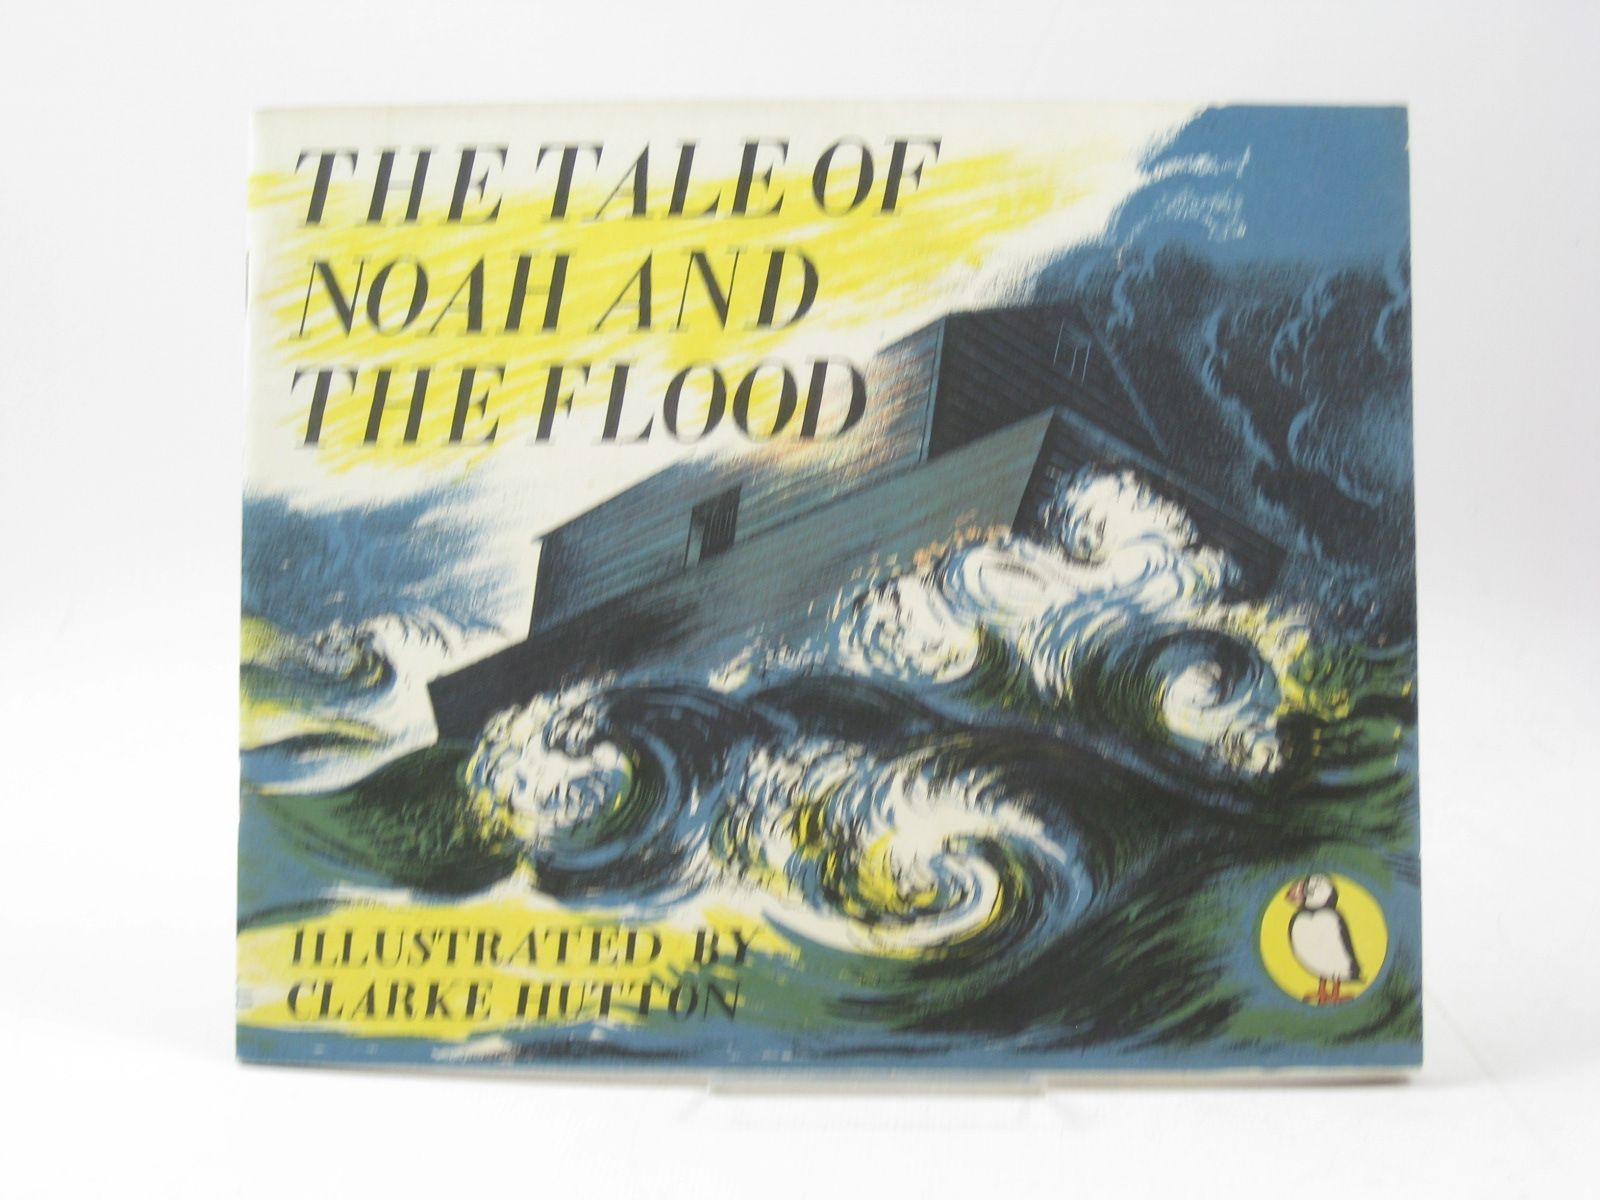 Photo of THE TALE OF NOAH AND THE FLOOD